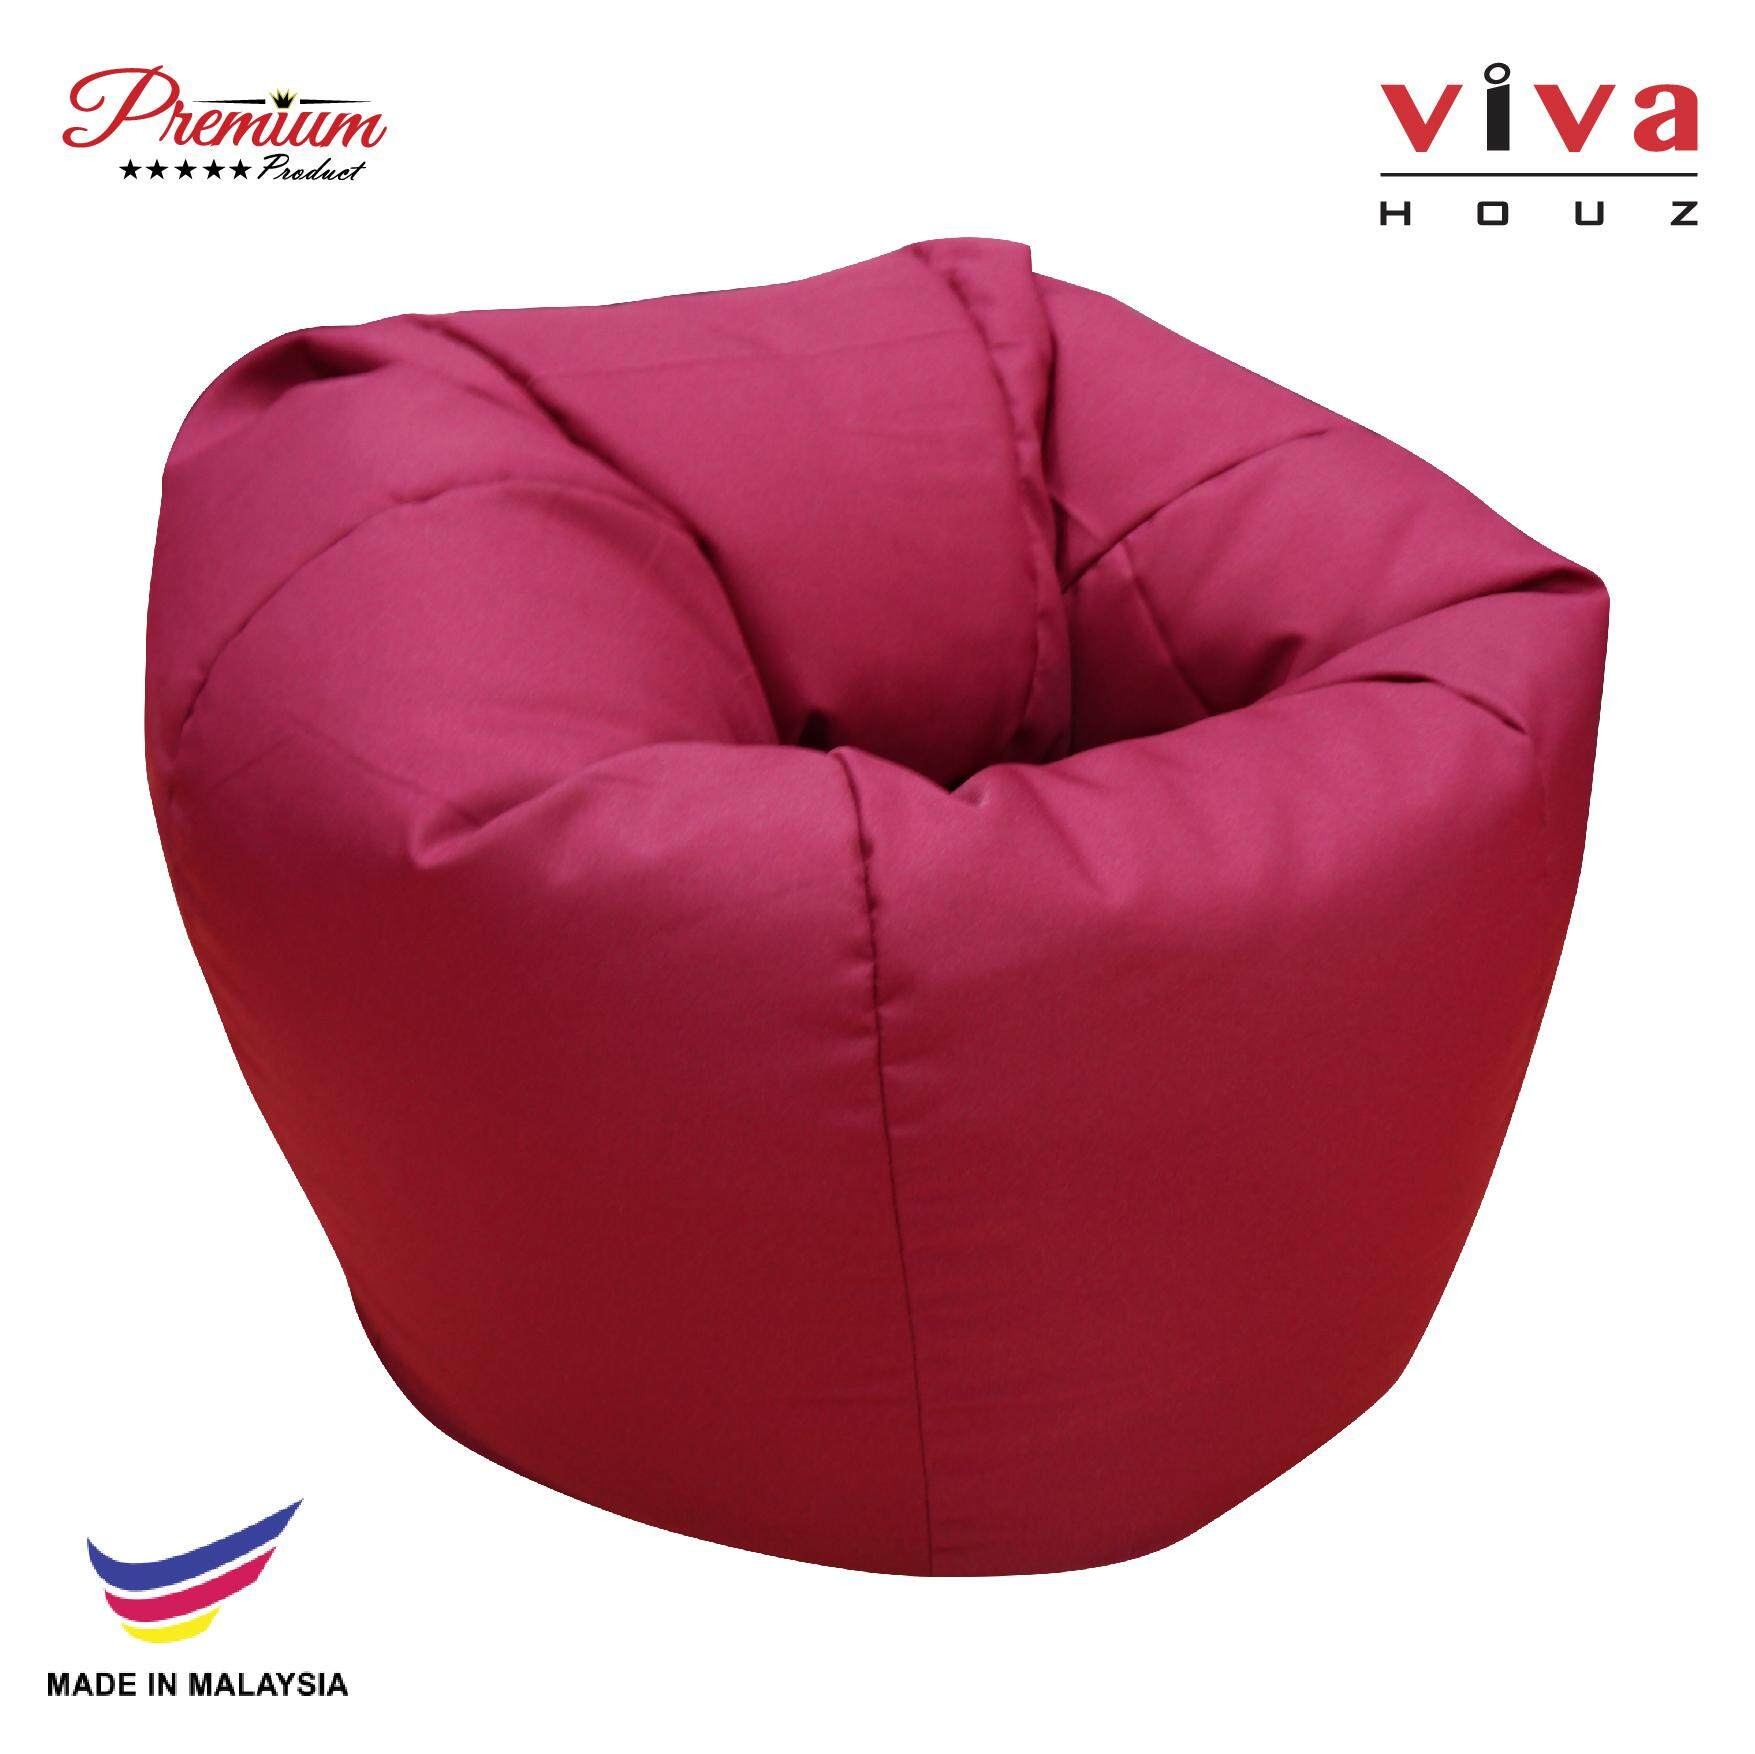 Hot Selling : Perfect Bean Bag Sofa Pouffe Chair L Size Maroon Made In Malaysia By Viva Living.